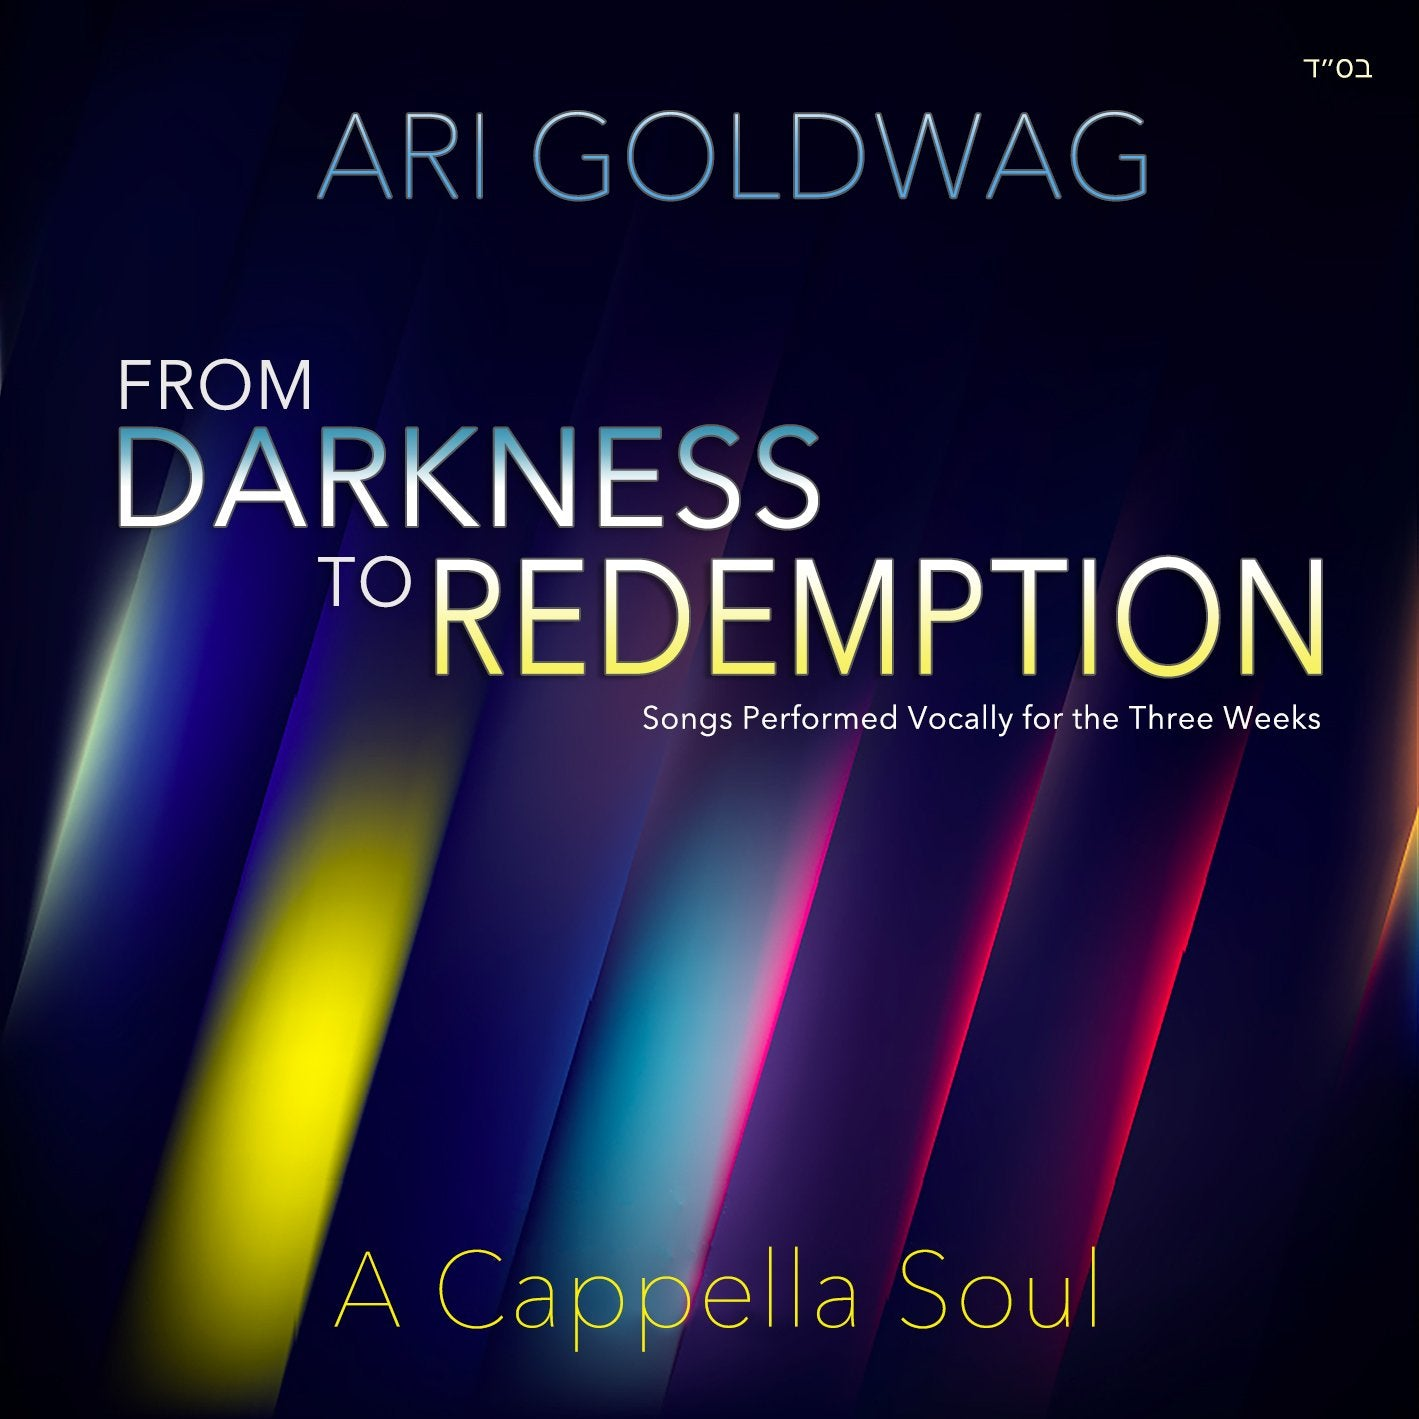 Ari Goldwag - A Cappella Darkness to Redemption